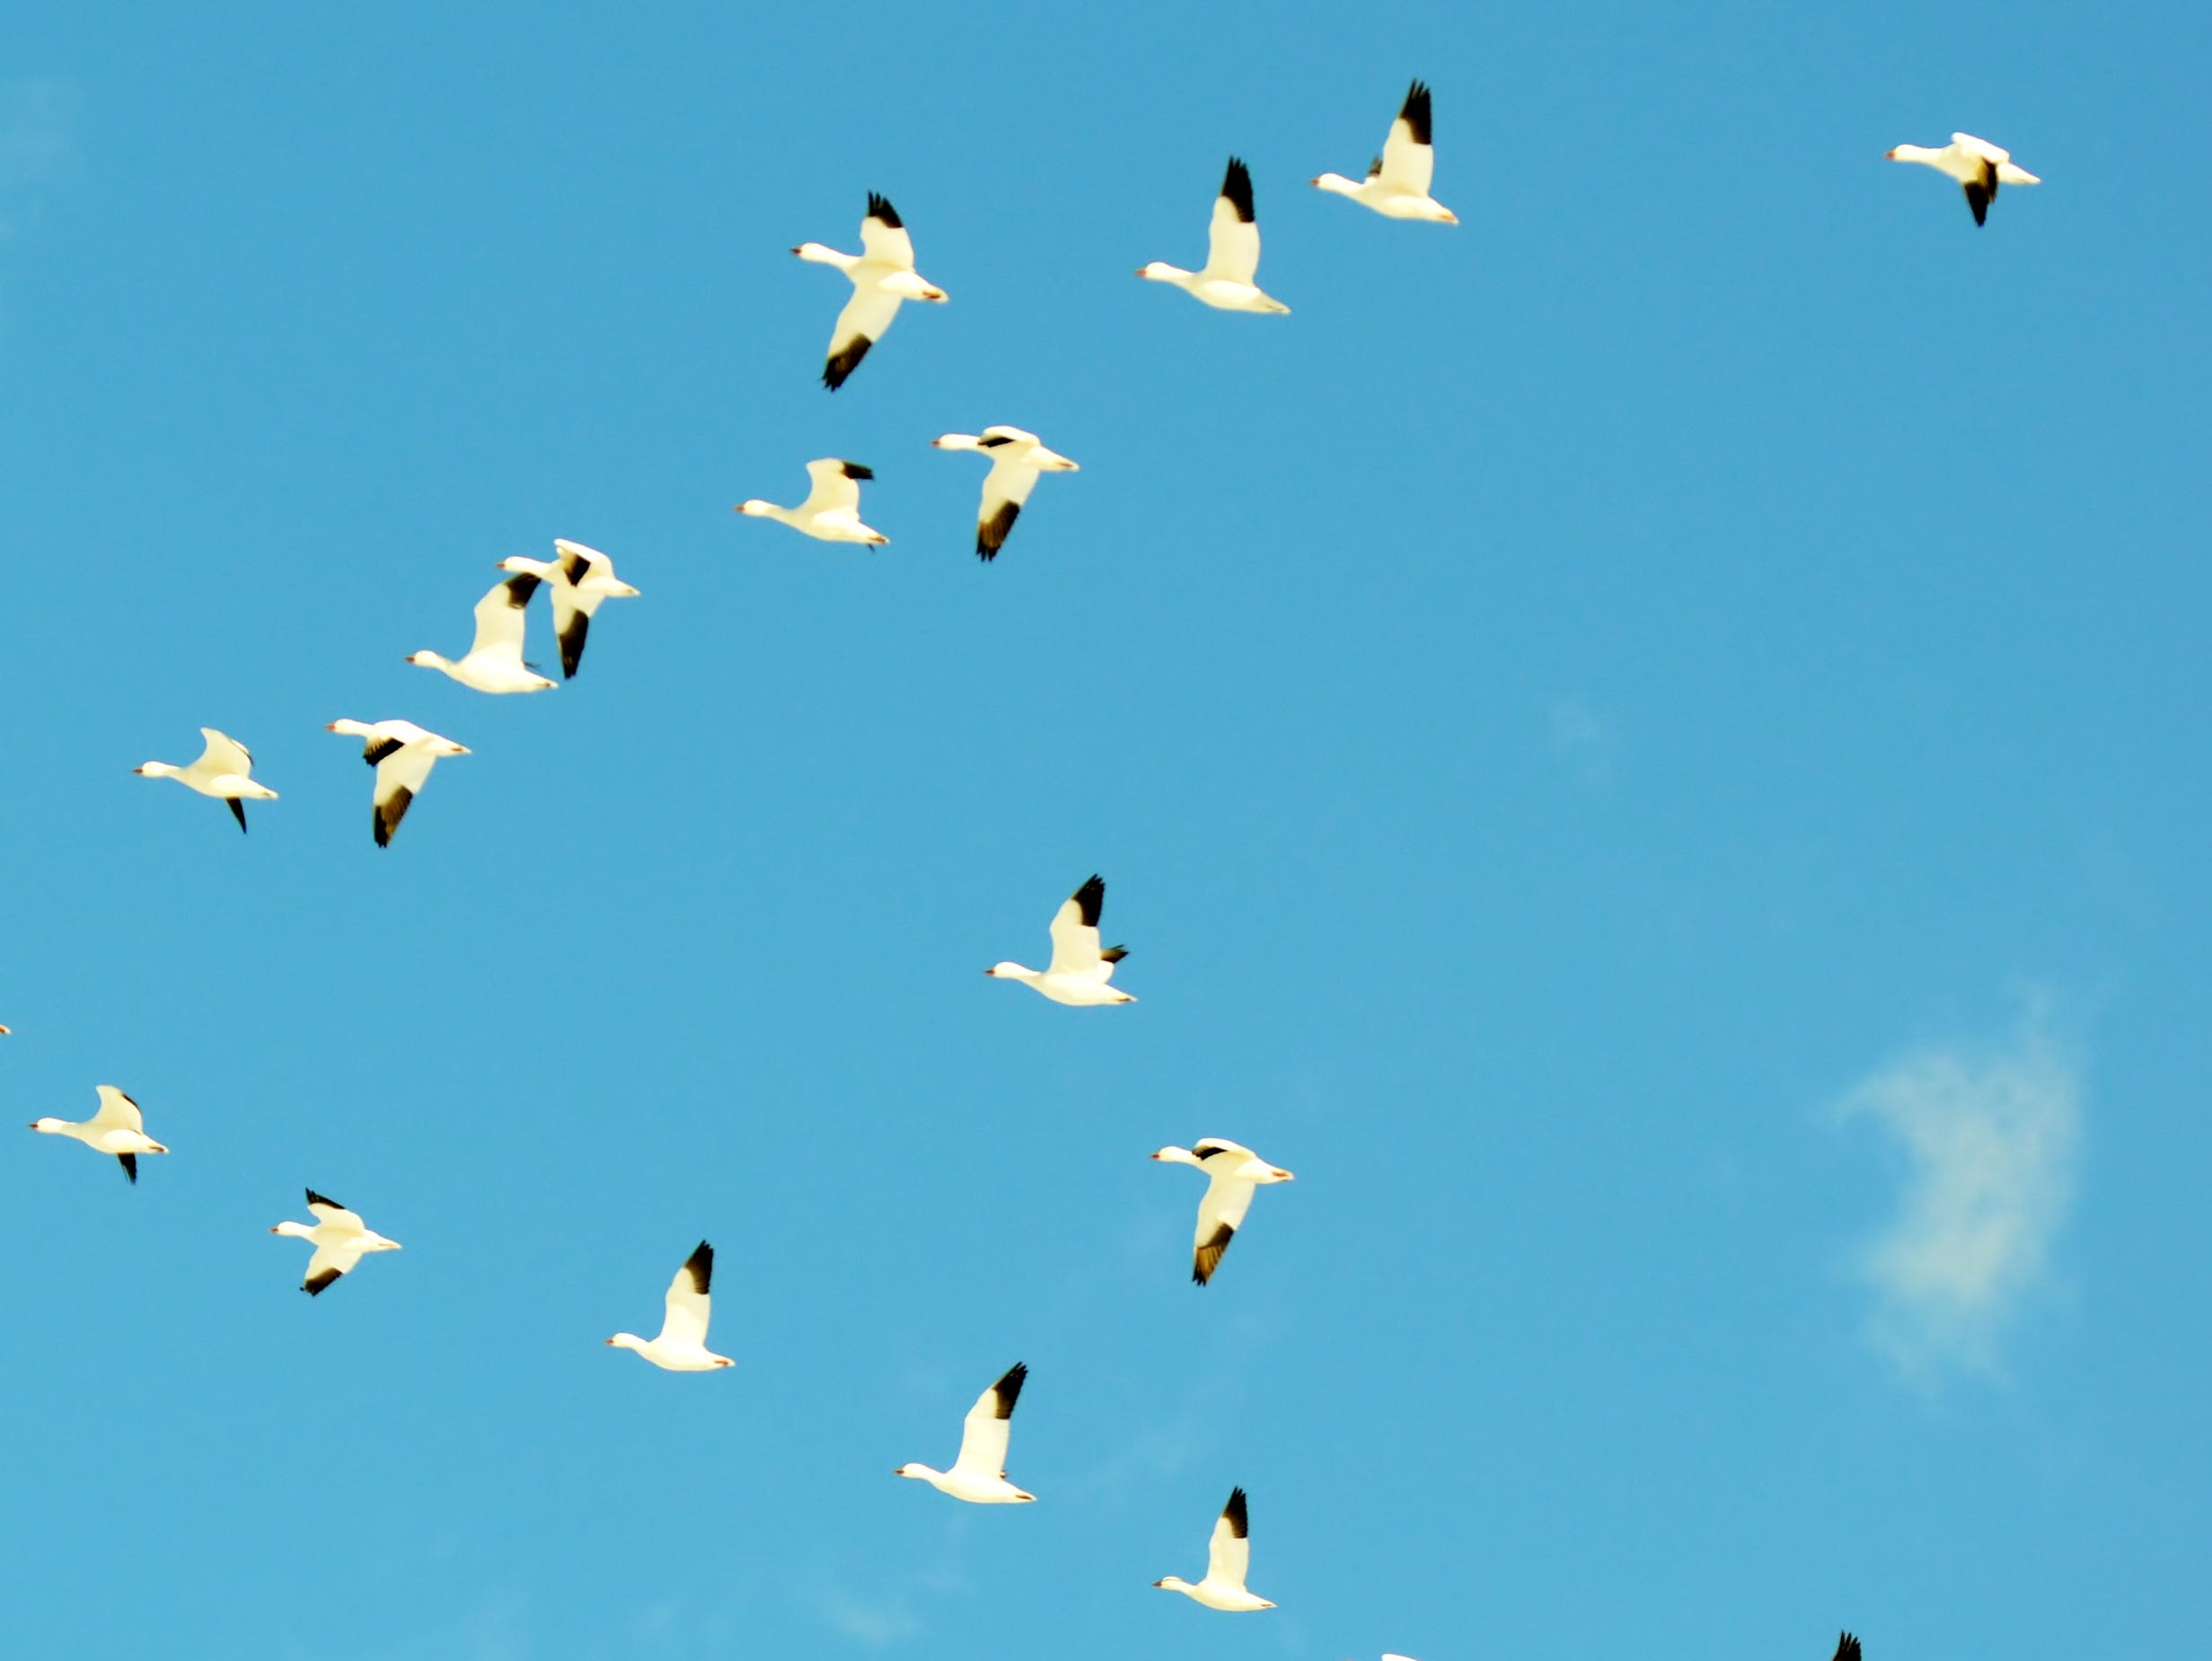 Snow geese heading out over fields of sparkling white.